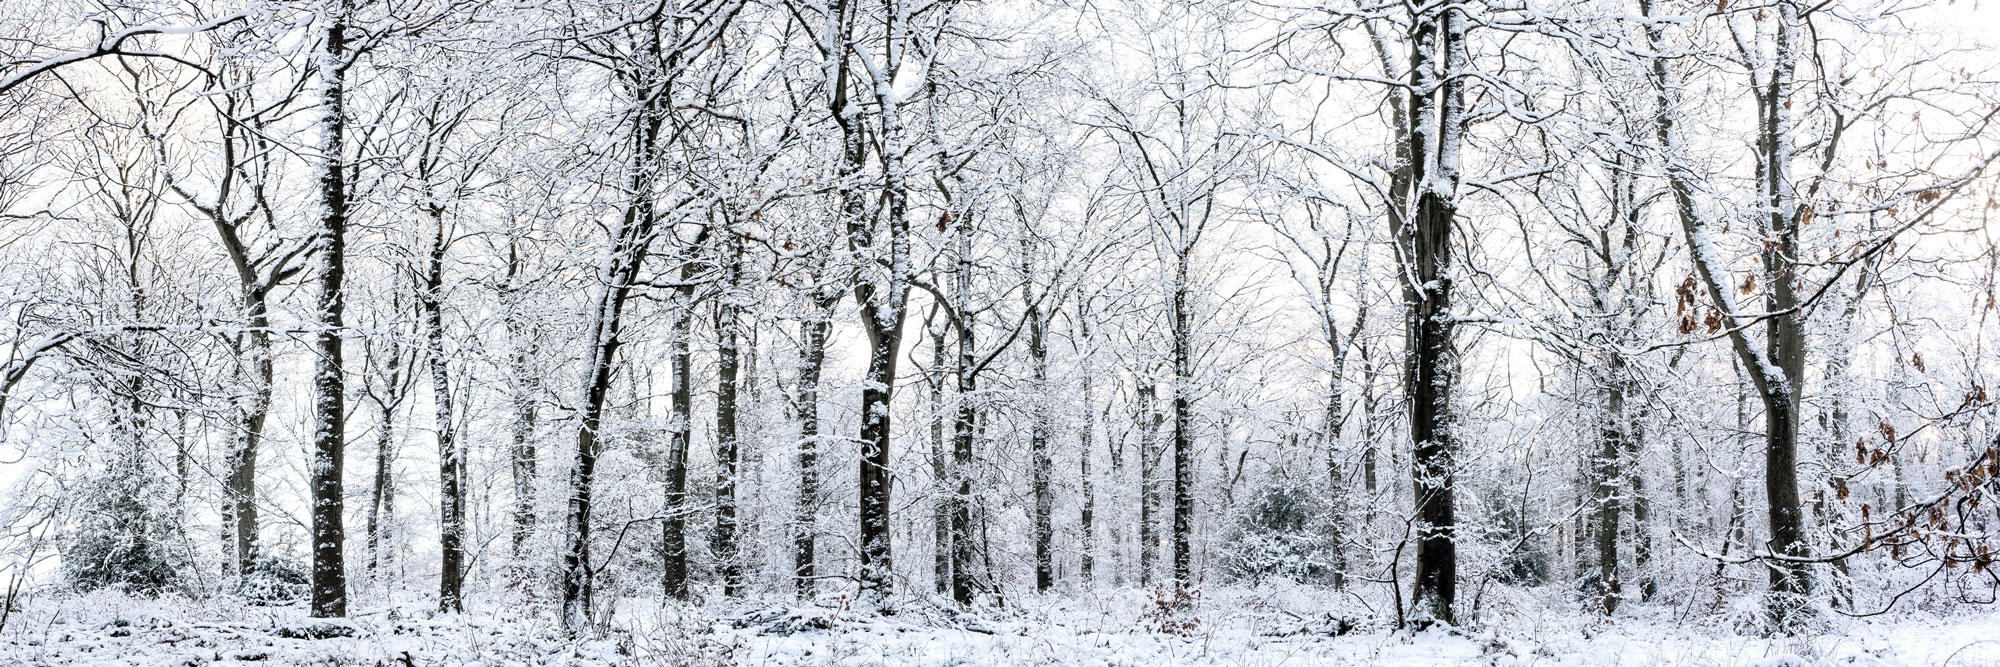 fewston forest after a snow storm